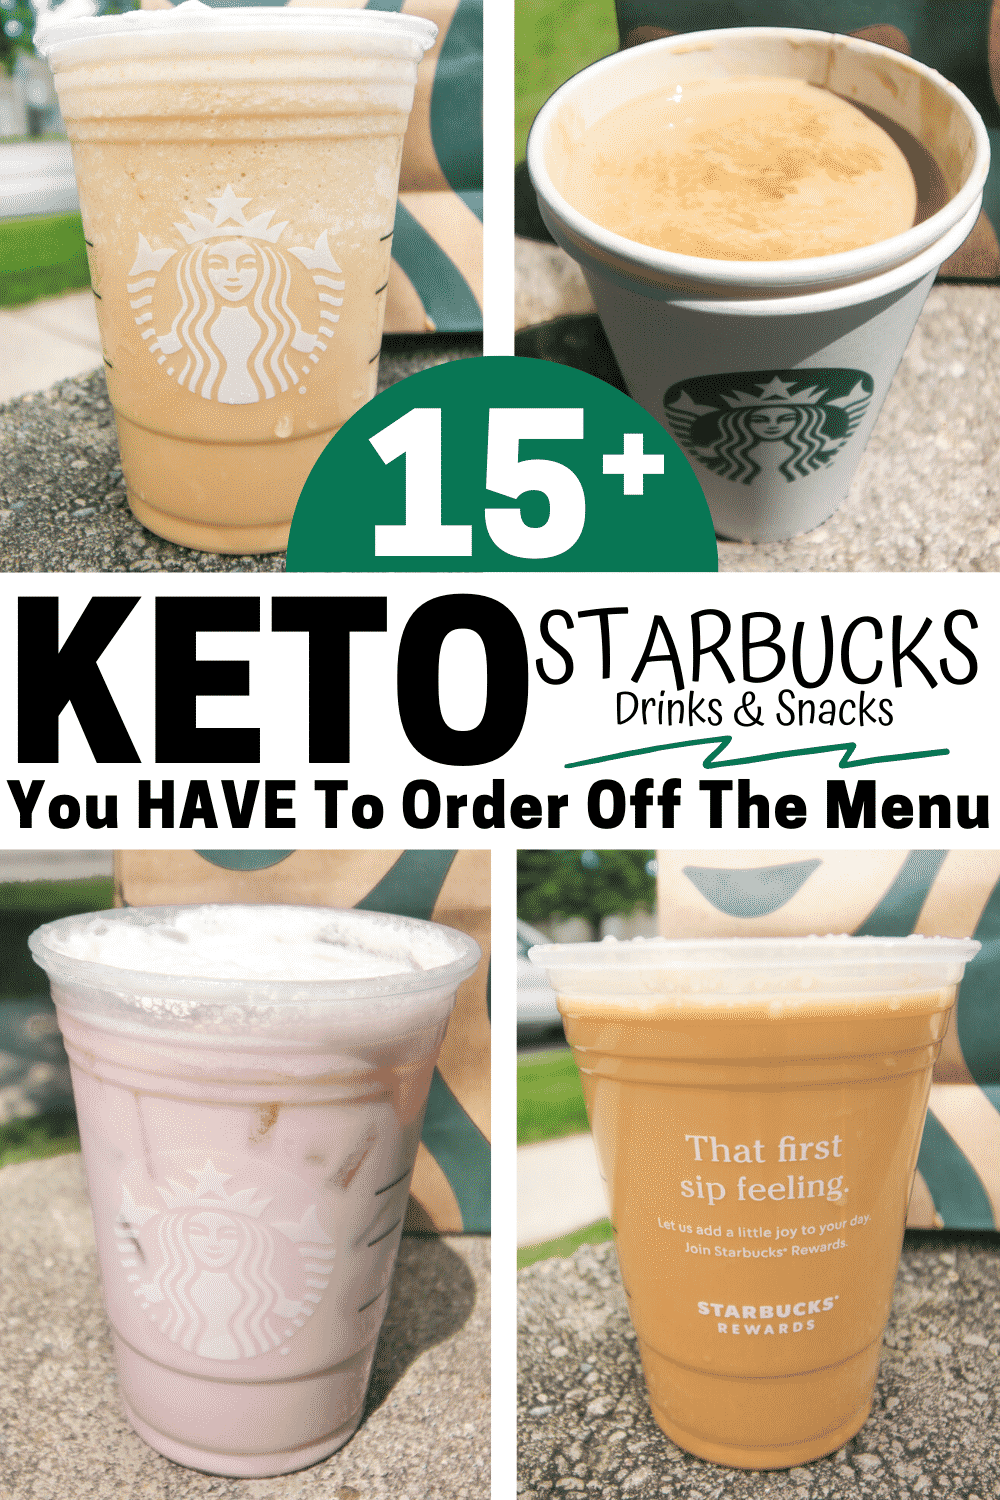 A compilation of 4 different Starbucks keto drinks.